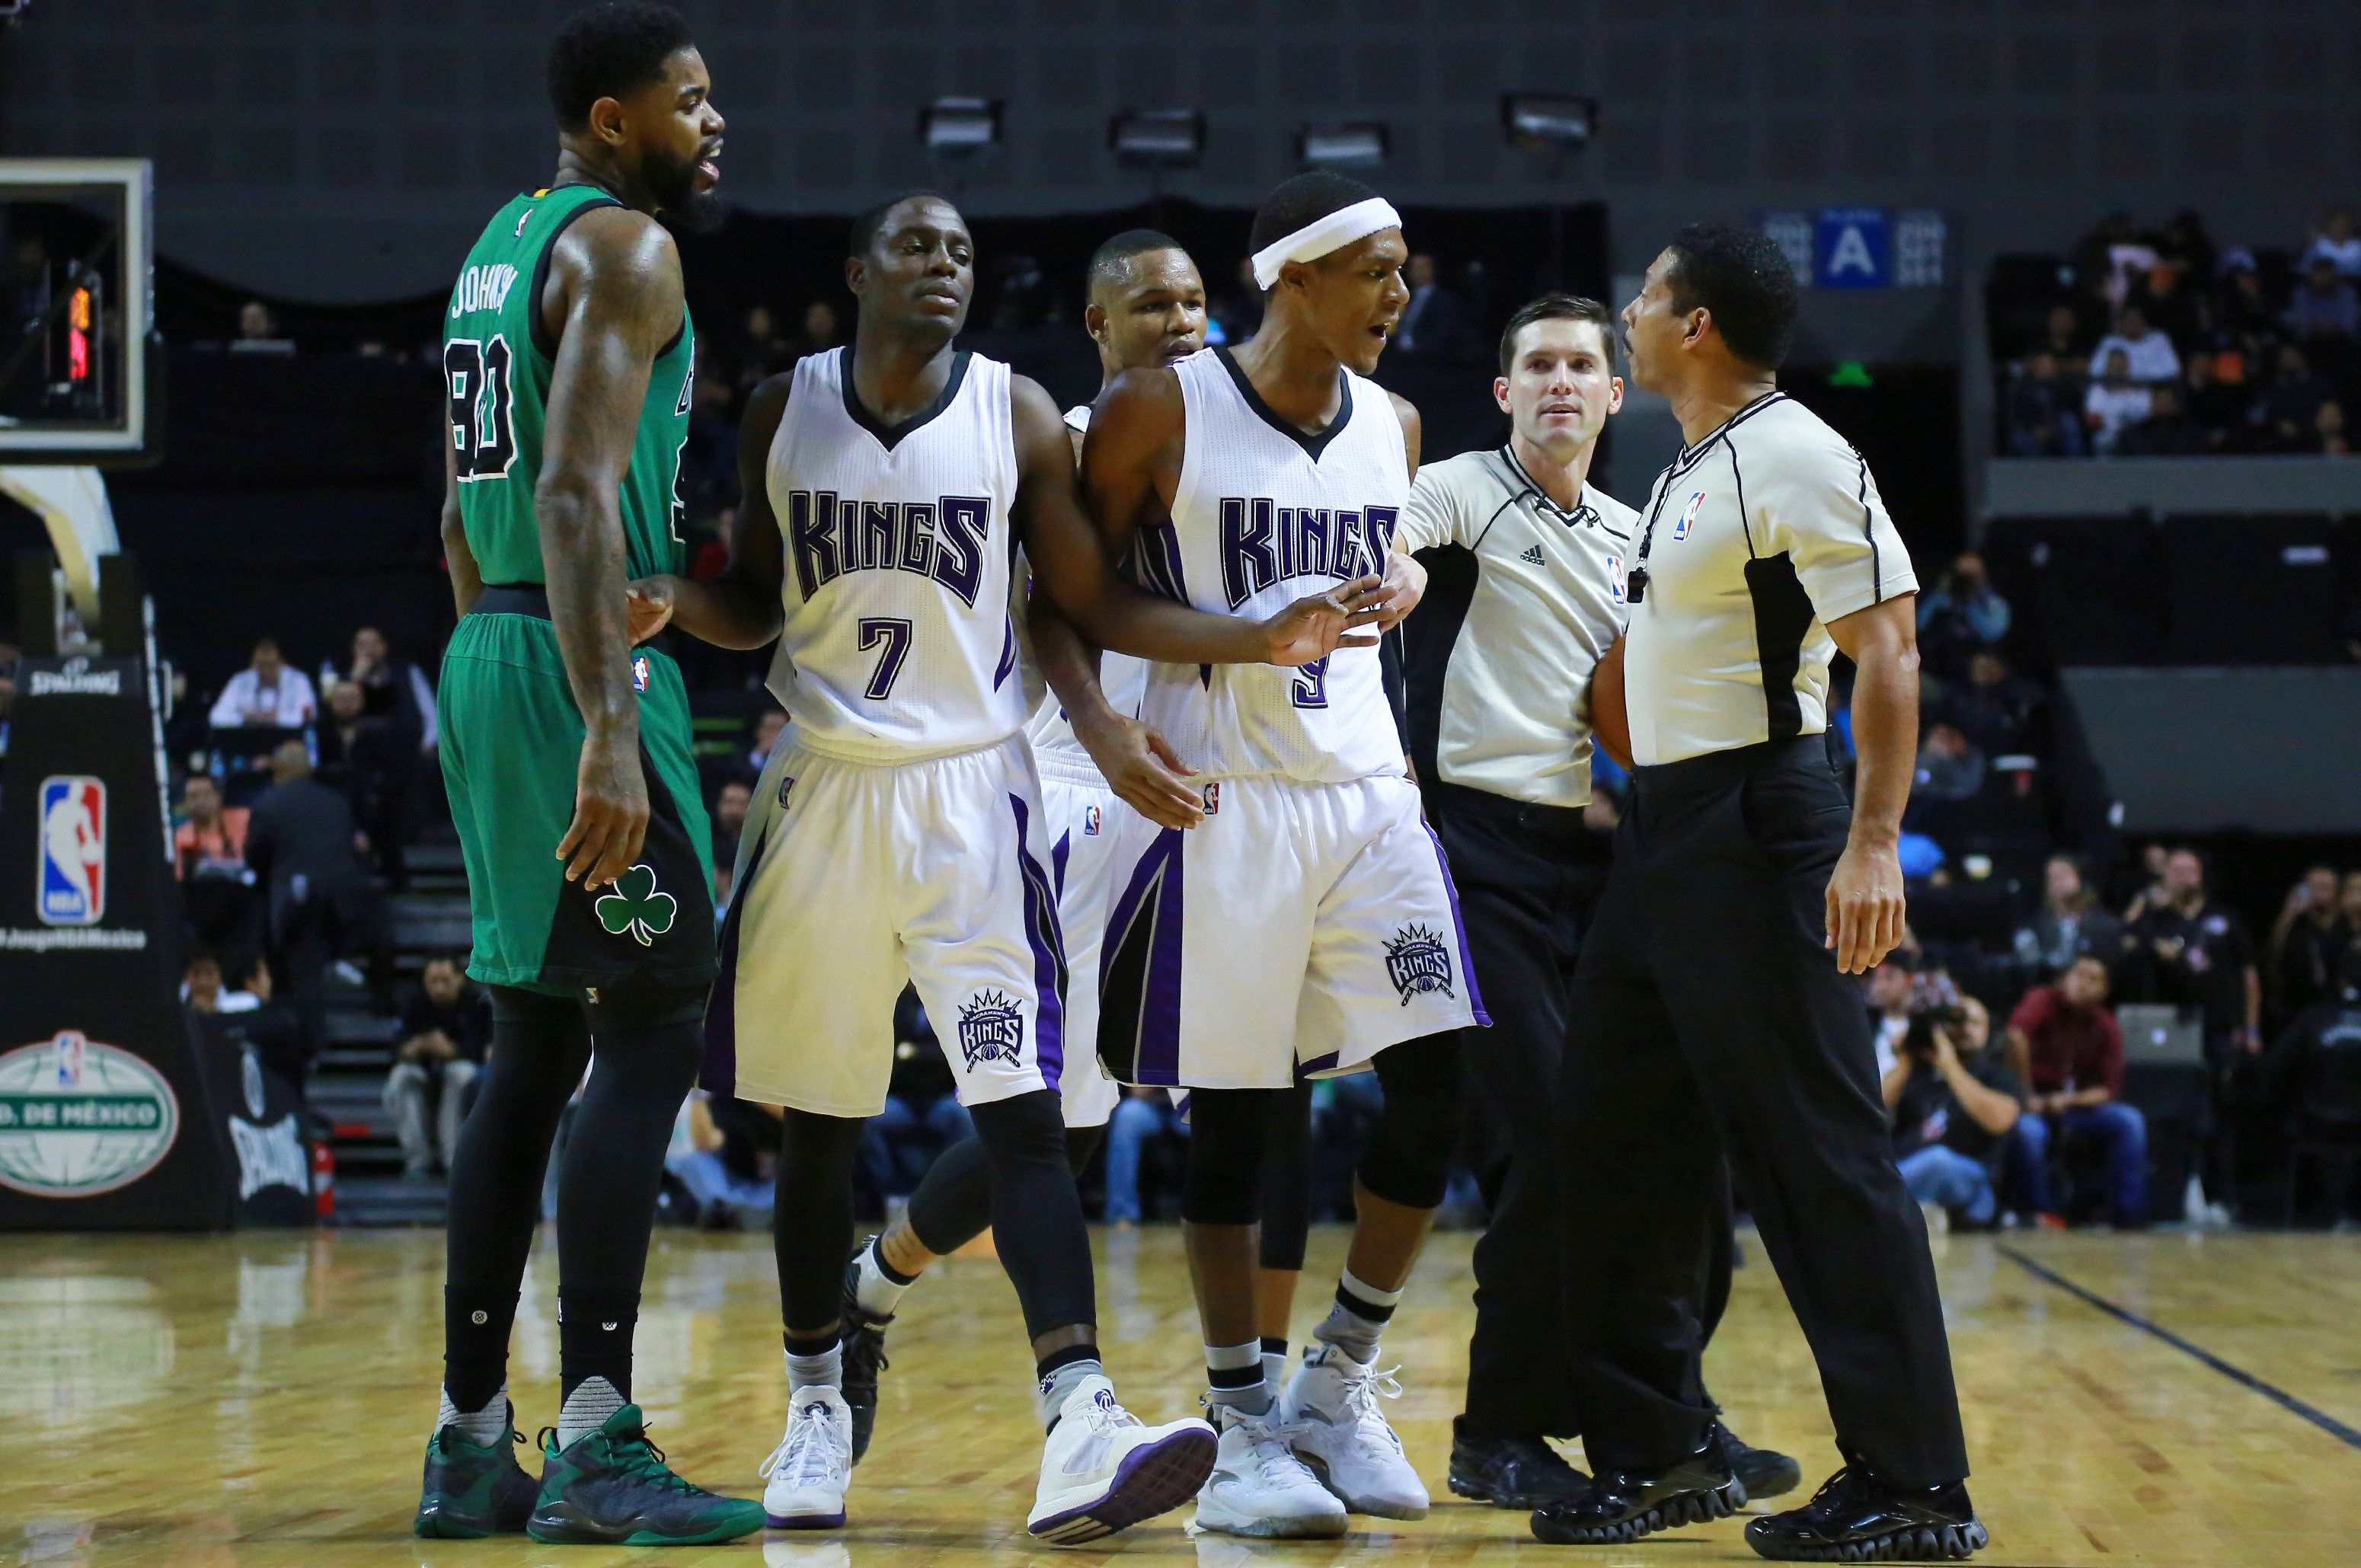 MEXICO CITY, MEXICO - DECEMBER 03:  Rajon Rondo of Sacramento Kings argues with the referee during the match between Sacramento Kings and Boston Celtics at Arena Ciudad de Mexico on December 03, 2015 in Mexico City, Mexico. (Photo by Hector Vivas/LatinContent/Getty Images)